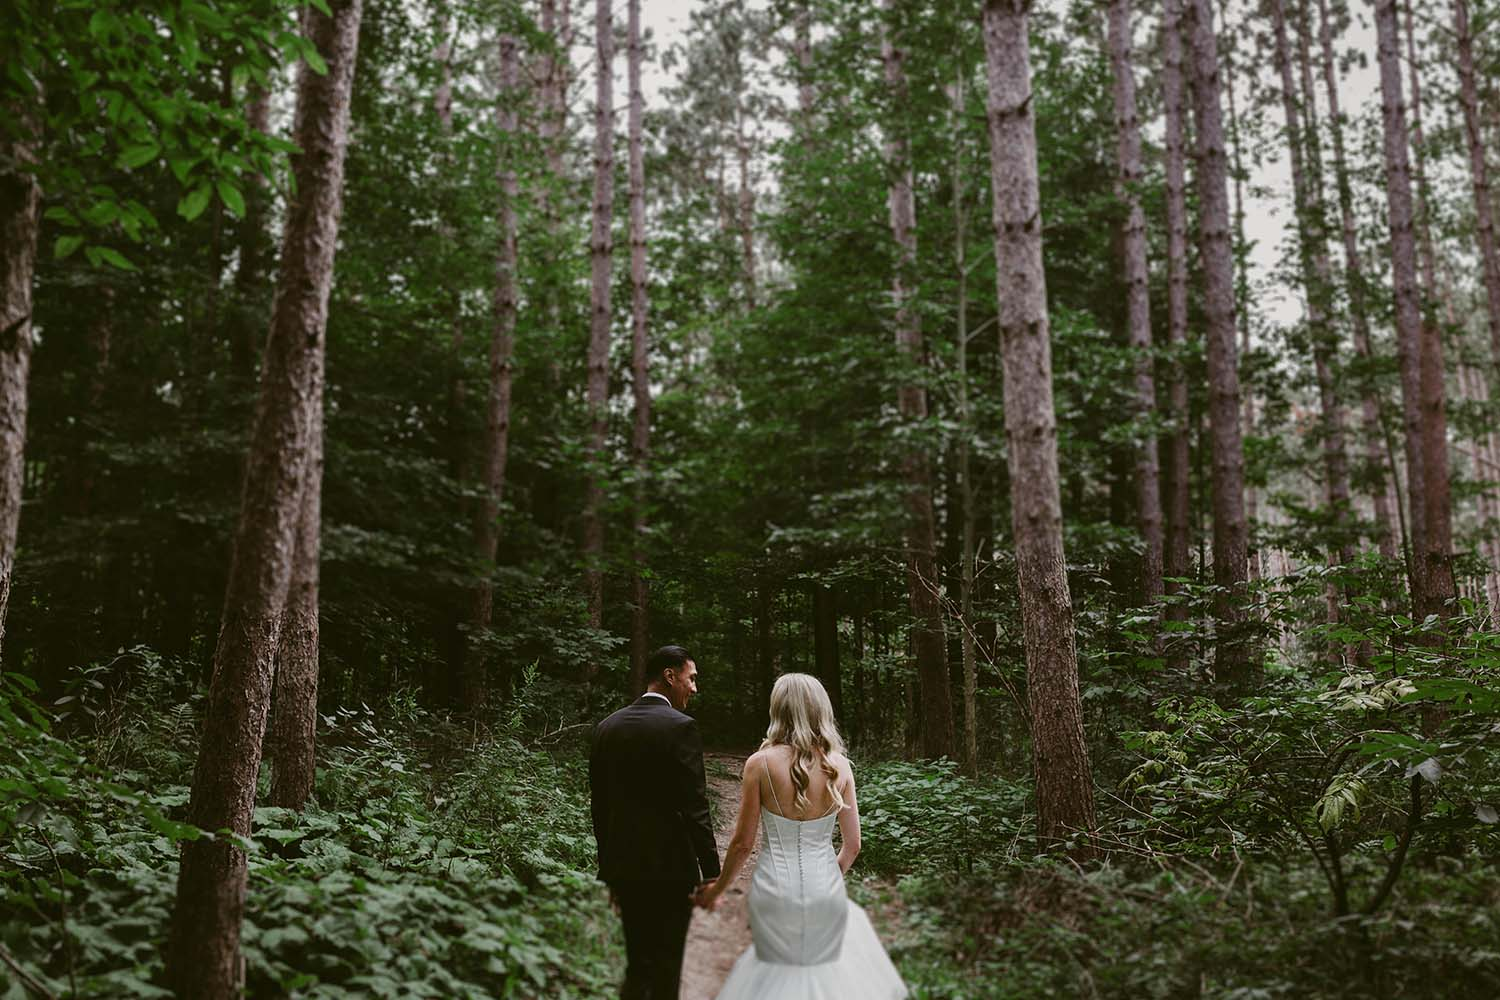 CopperRed_Photography_forest-bridal-portraits.jpg